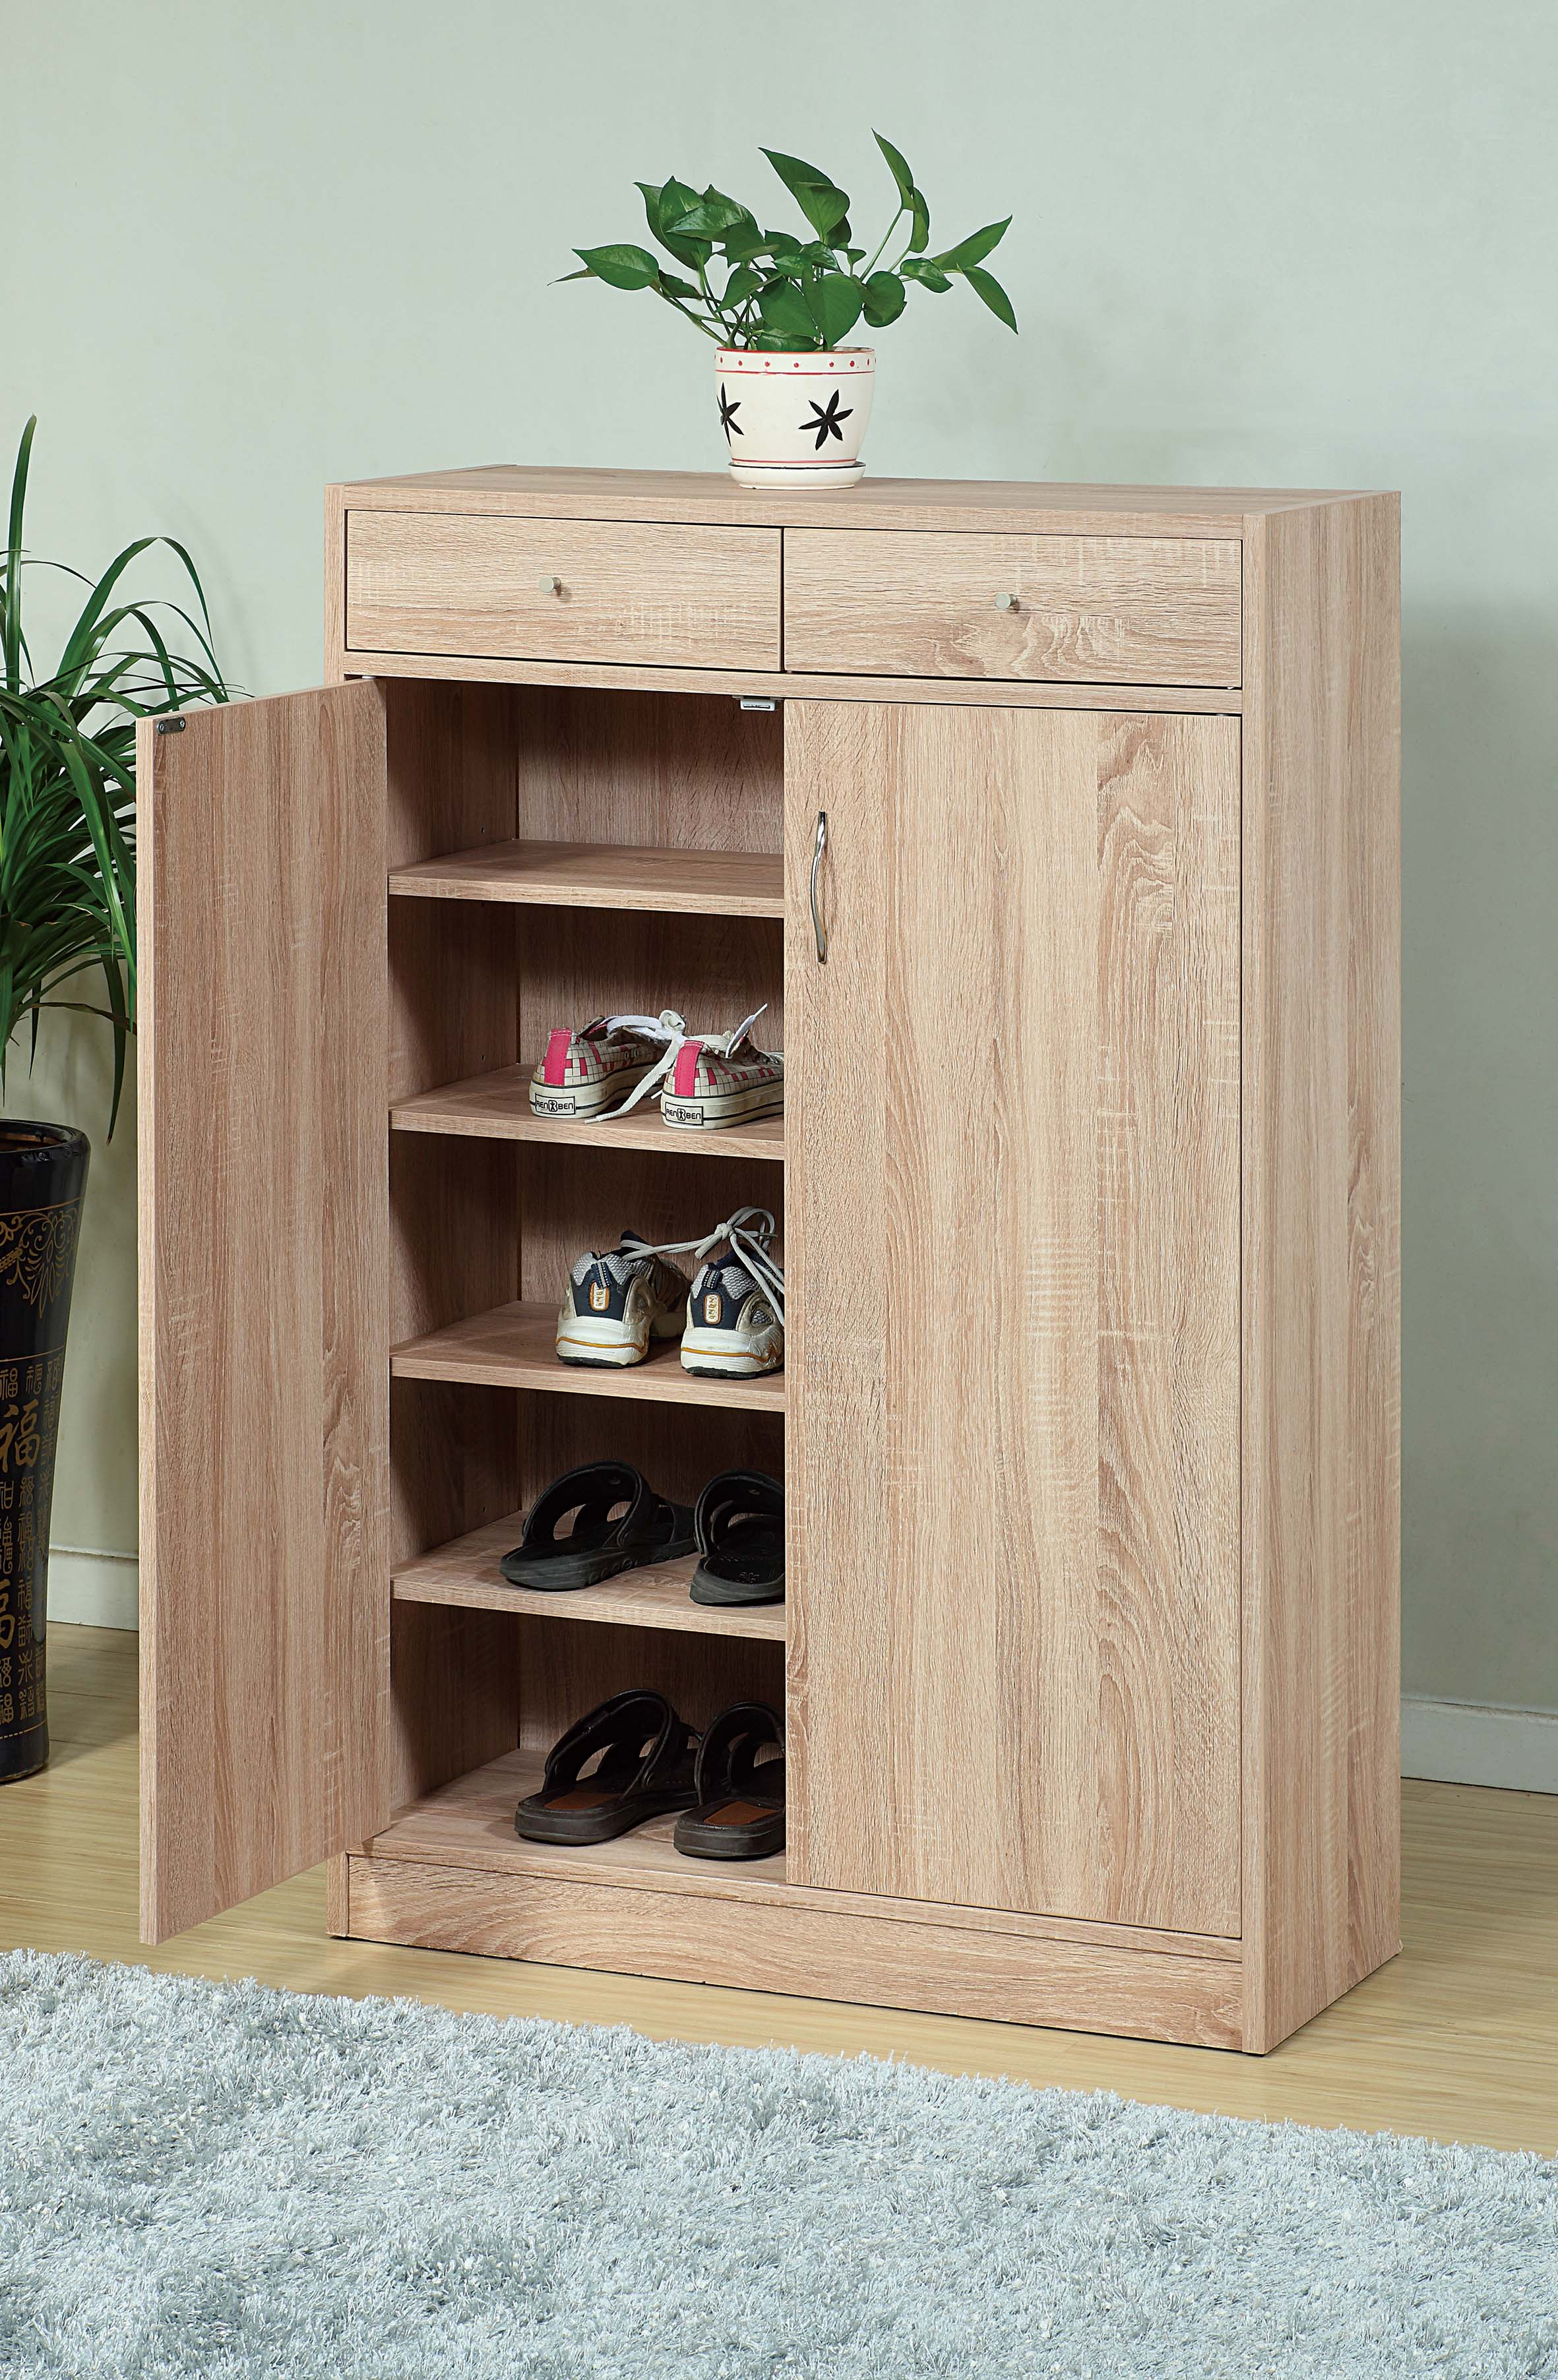 Adorning Shoe Cabinet With Adjustable Shelves, Brown